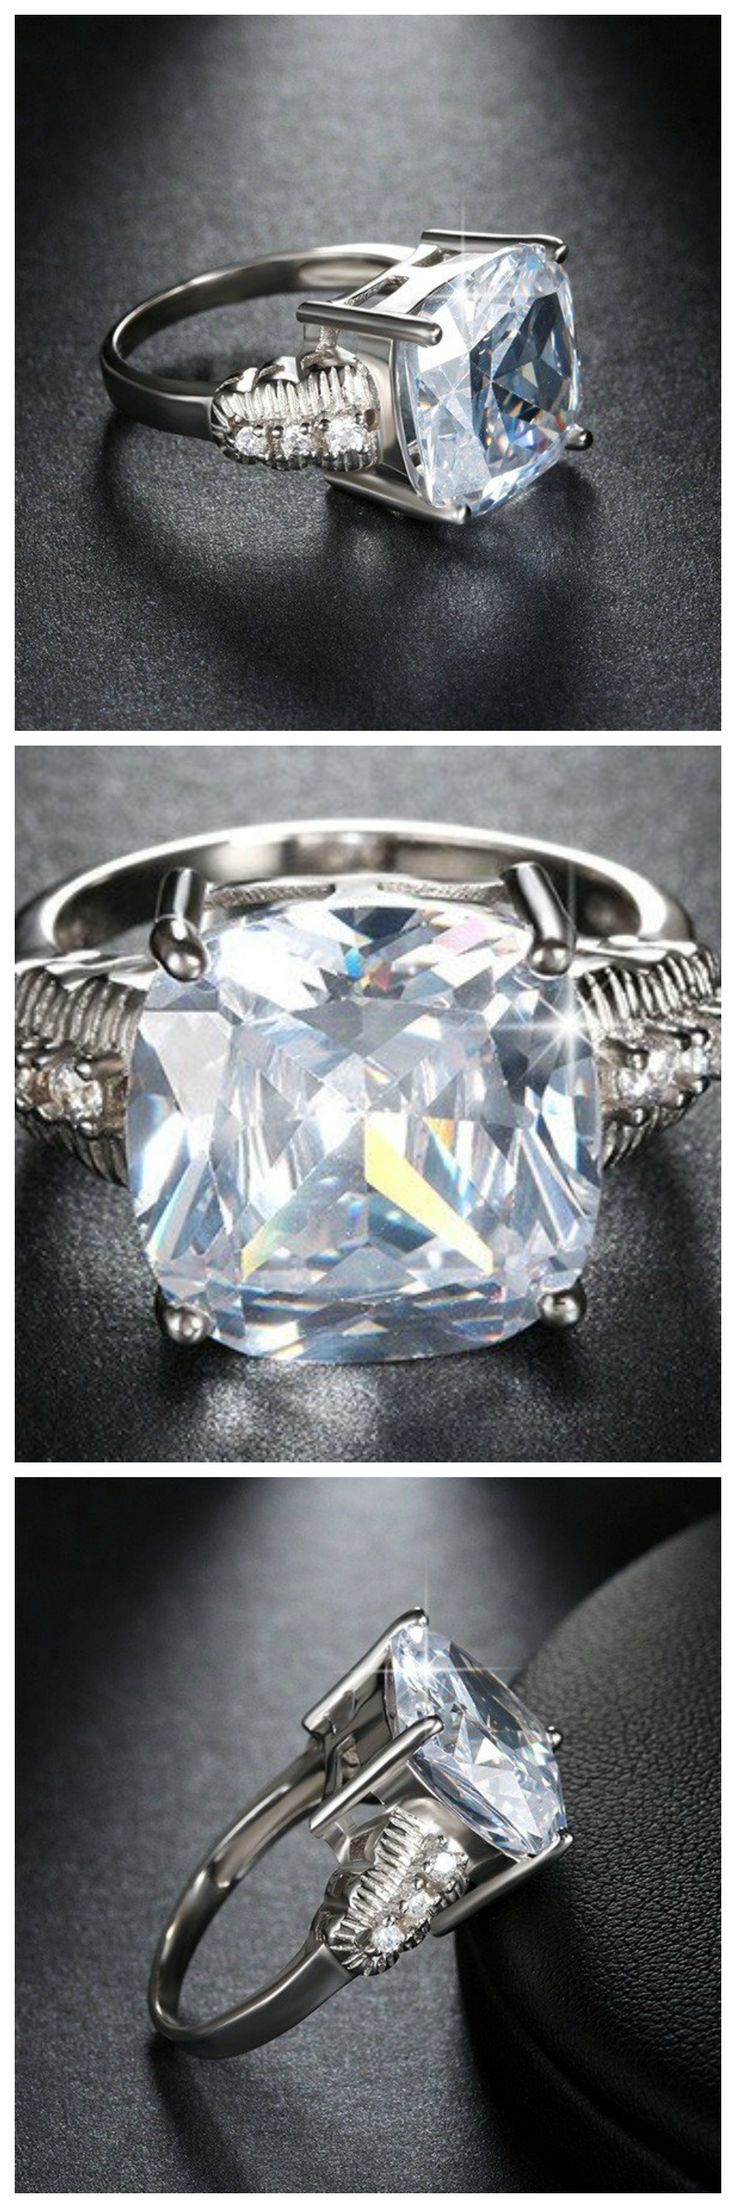 Ziphlets engagement ring. Get 10% off with the code ZIPHLETS10